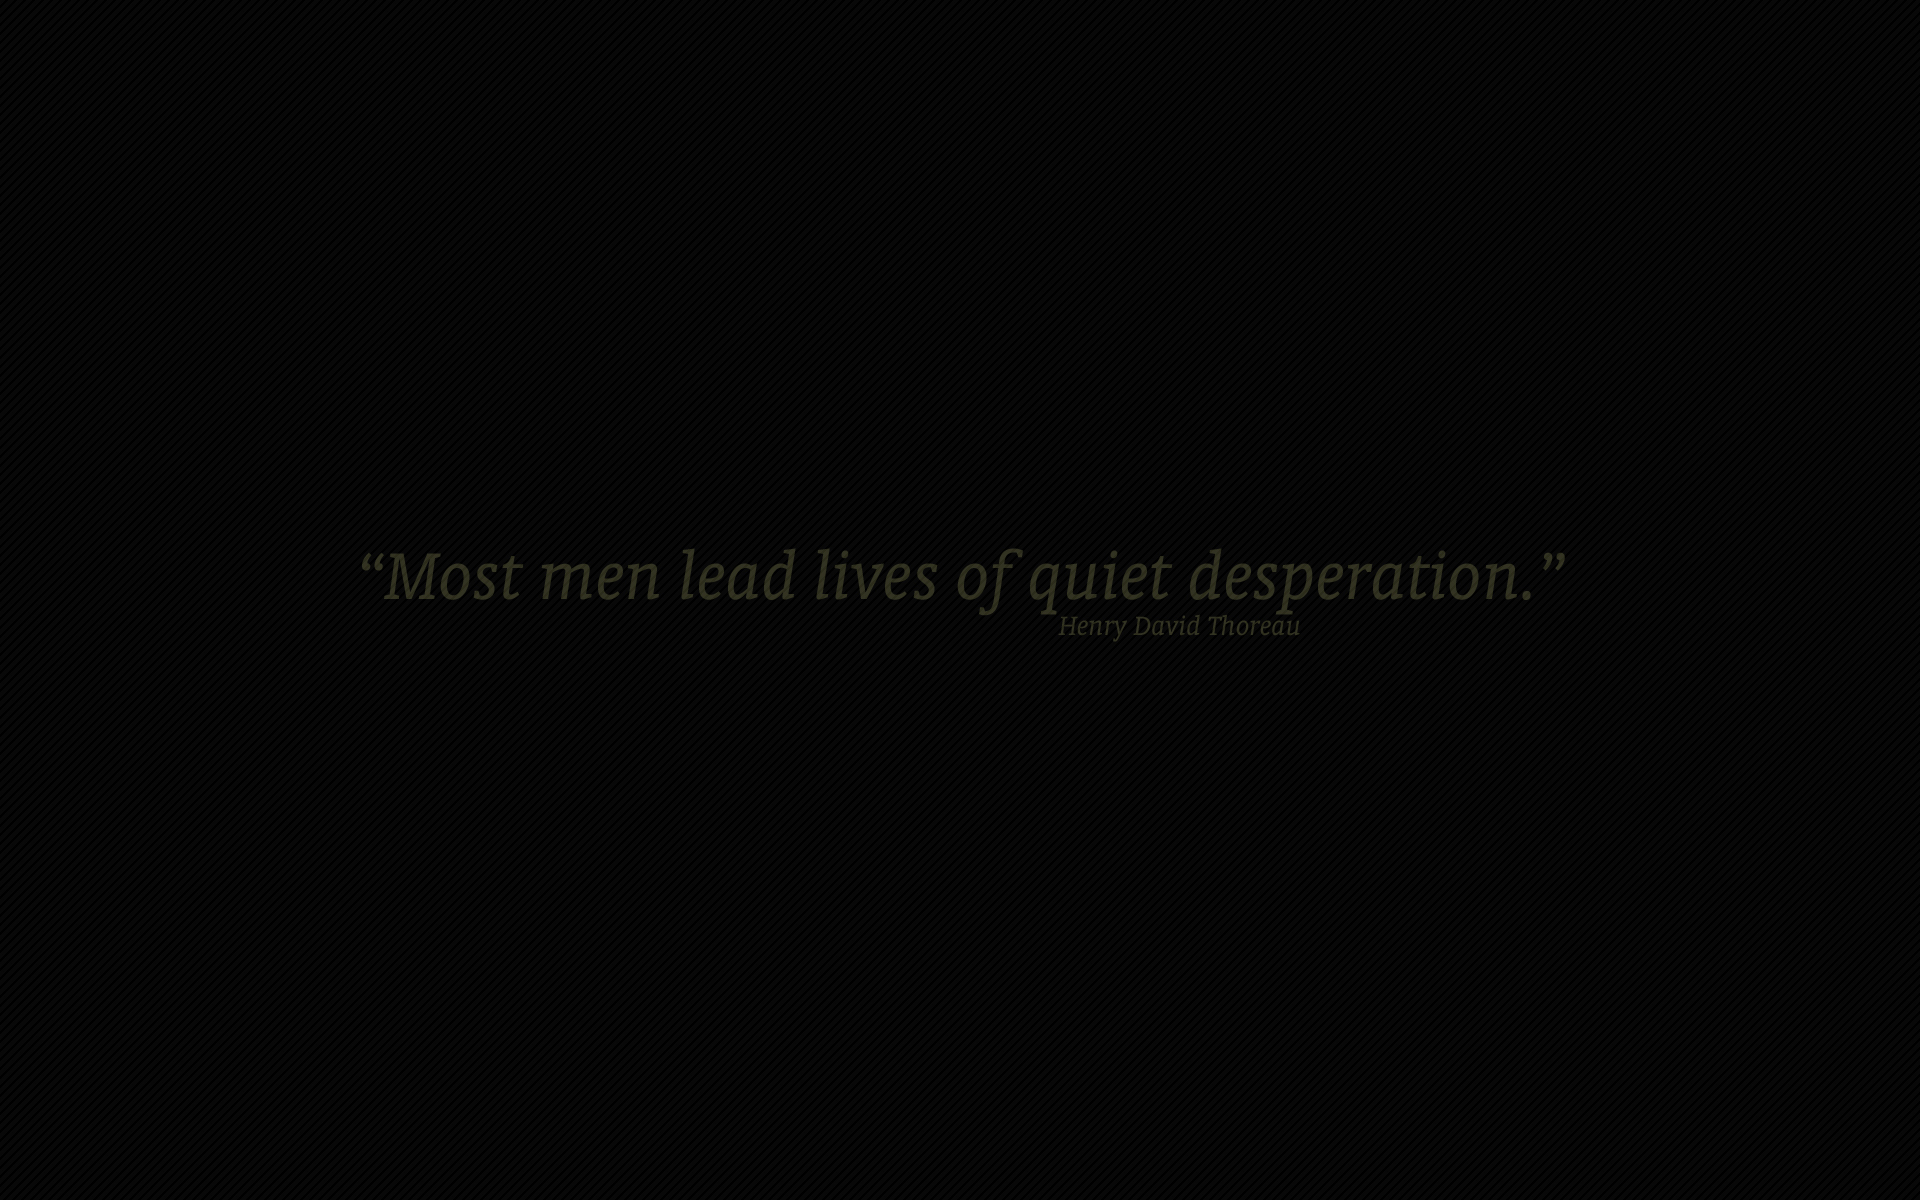 minimalistic text Quotes Henry HD Wallpaper